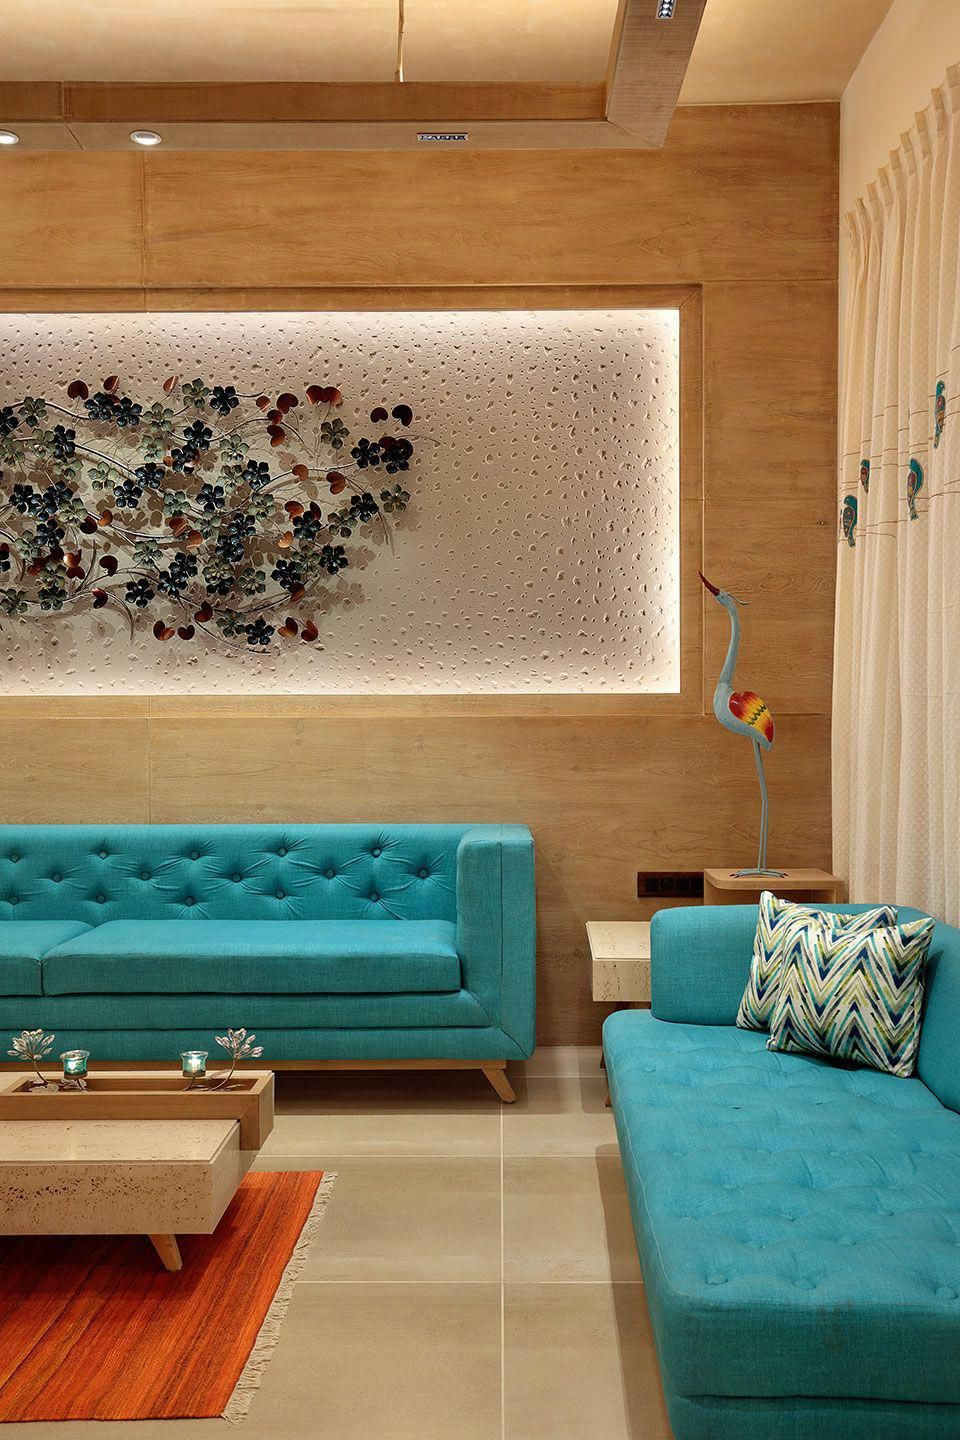 Drawing Room Sofa Designs India: The Turquoise House Mixes Traditional & Mediterranean